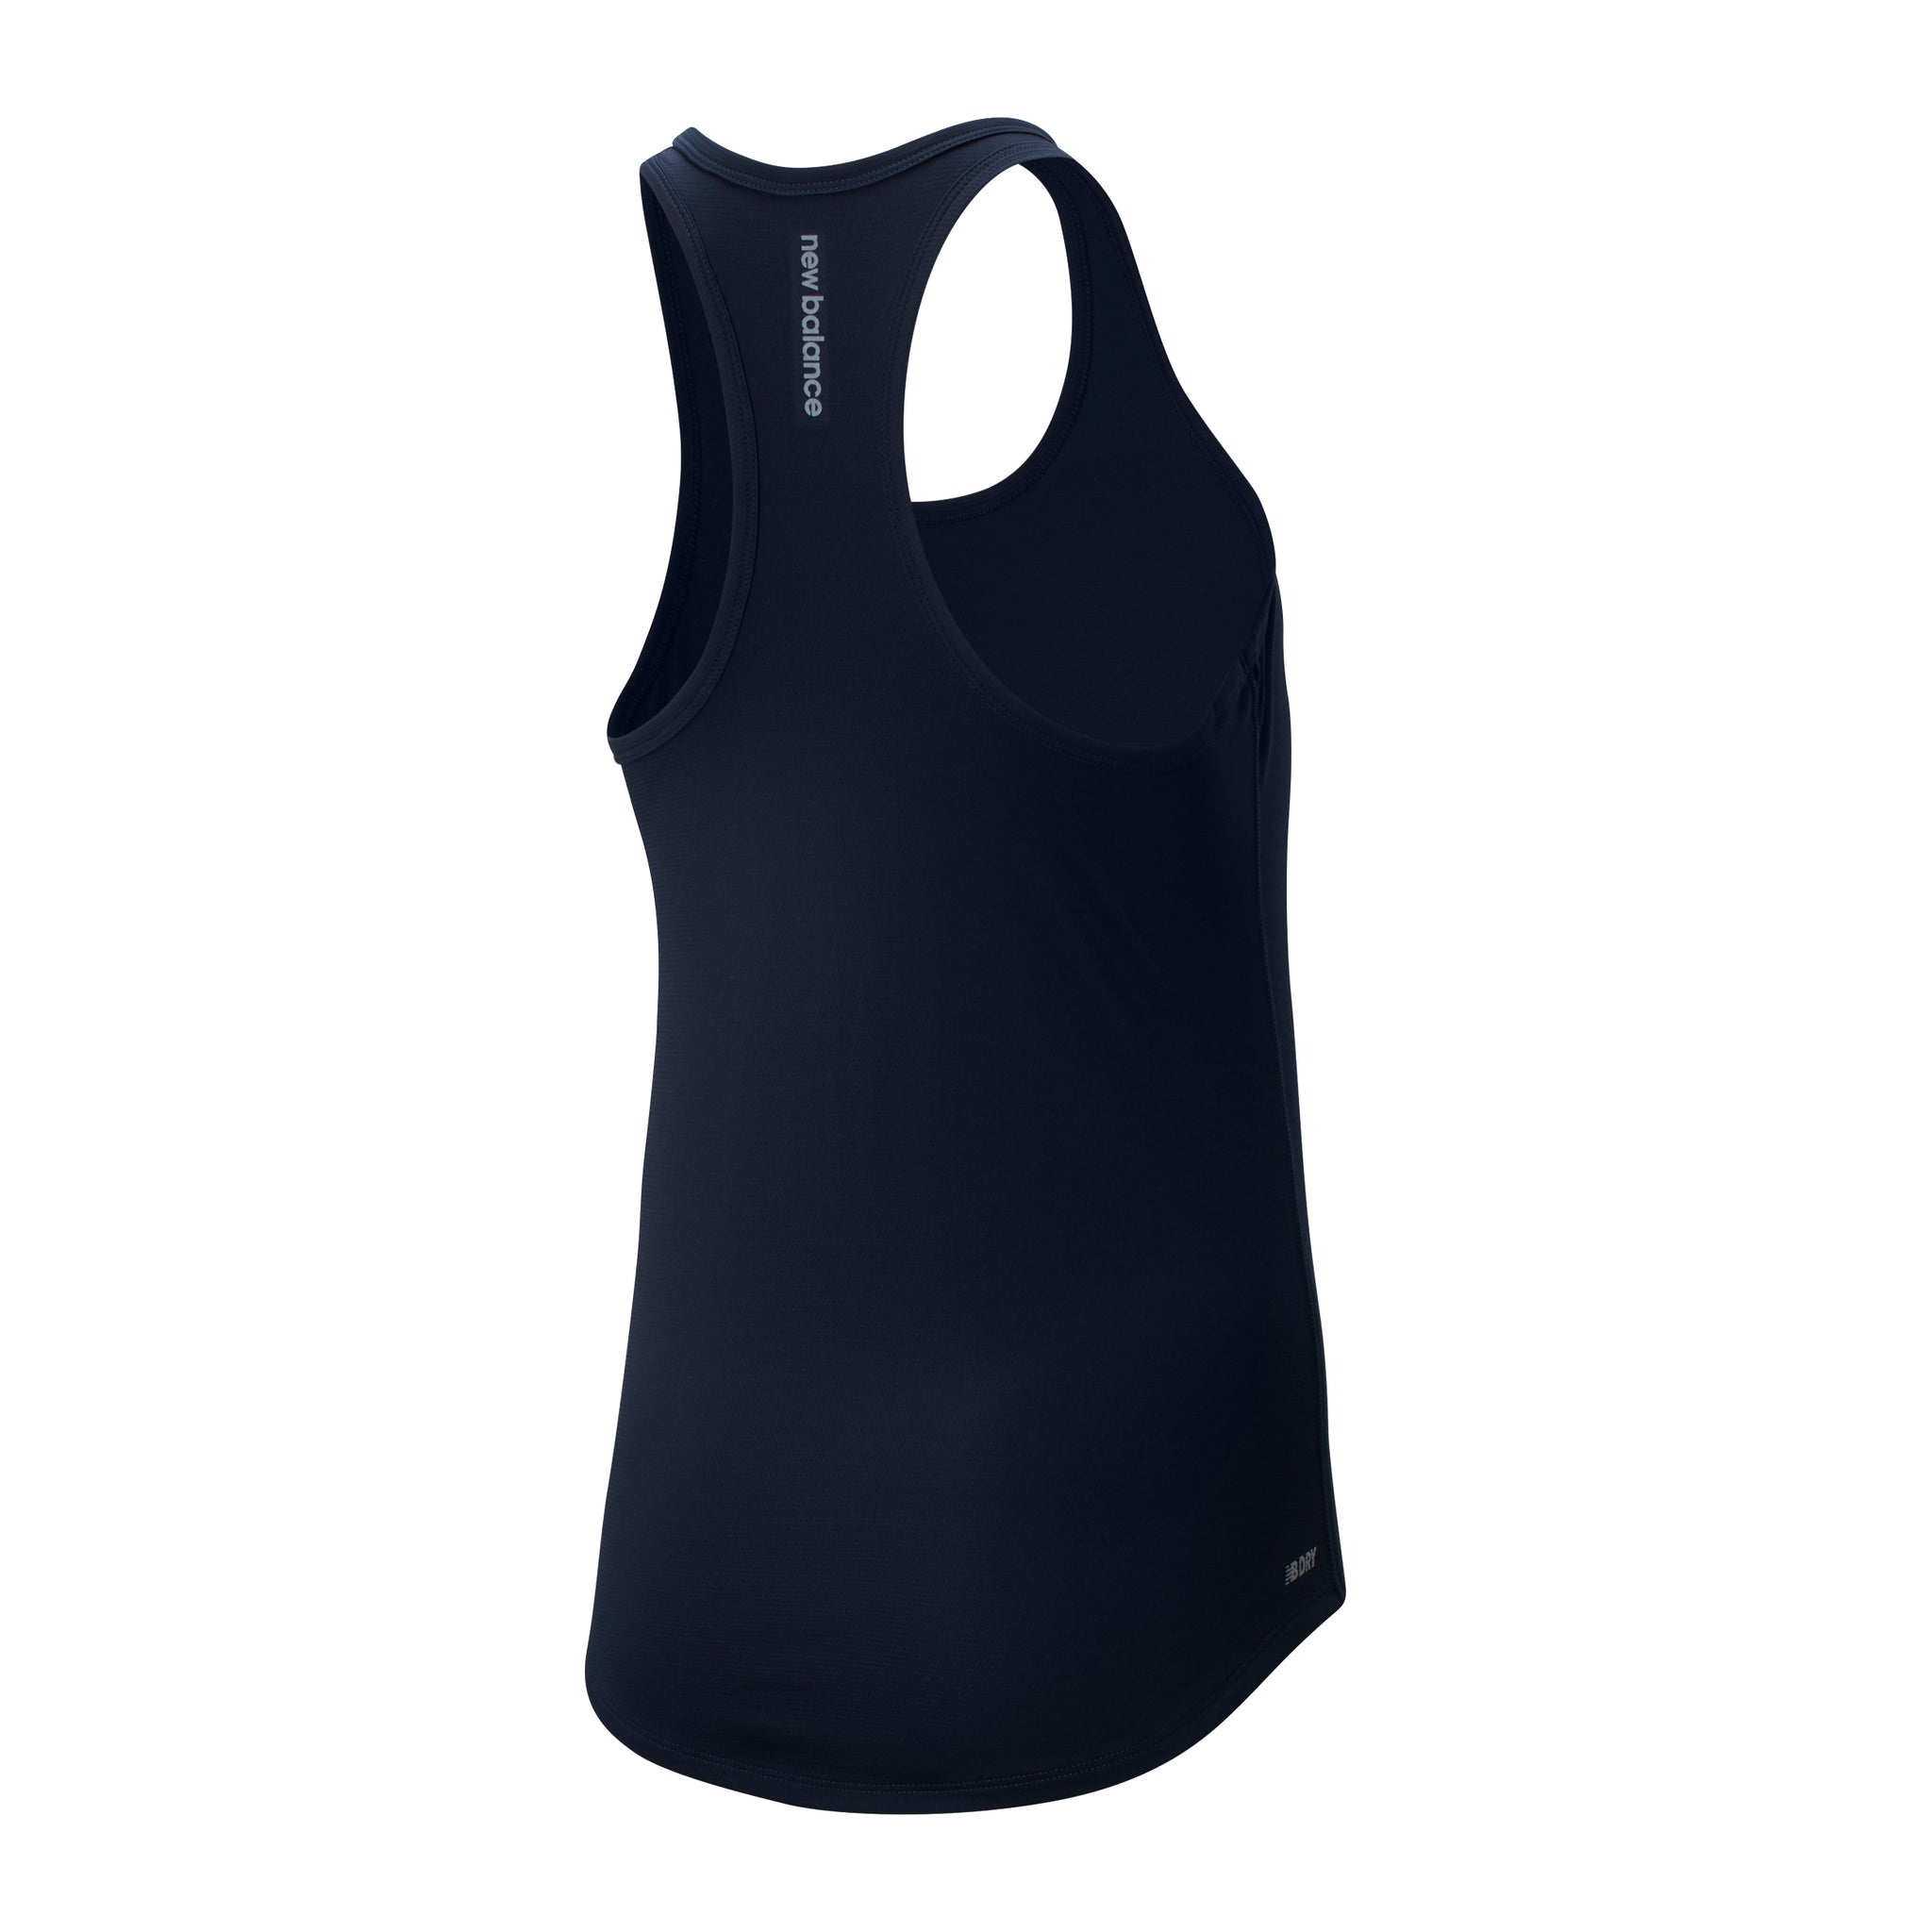 New Balance Women Tank Top Tennis Training